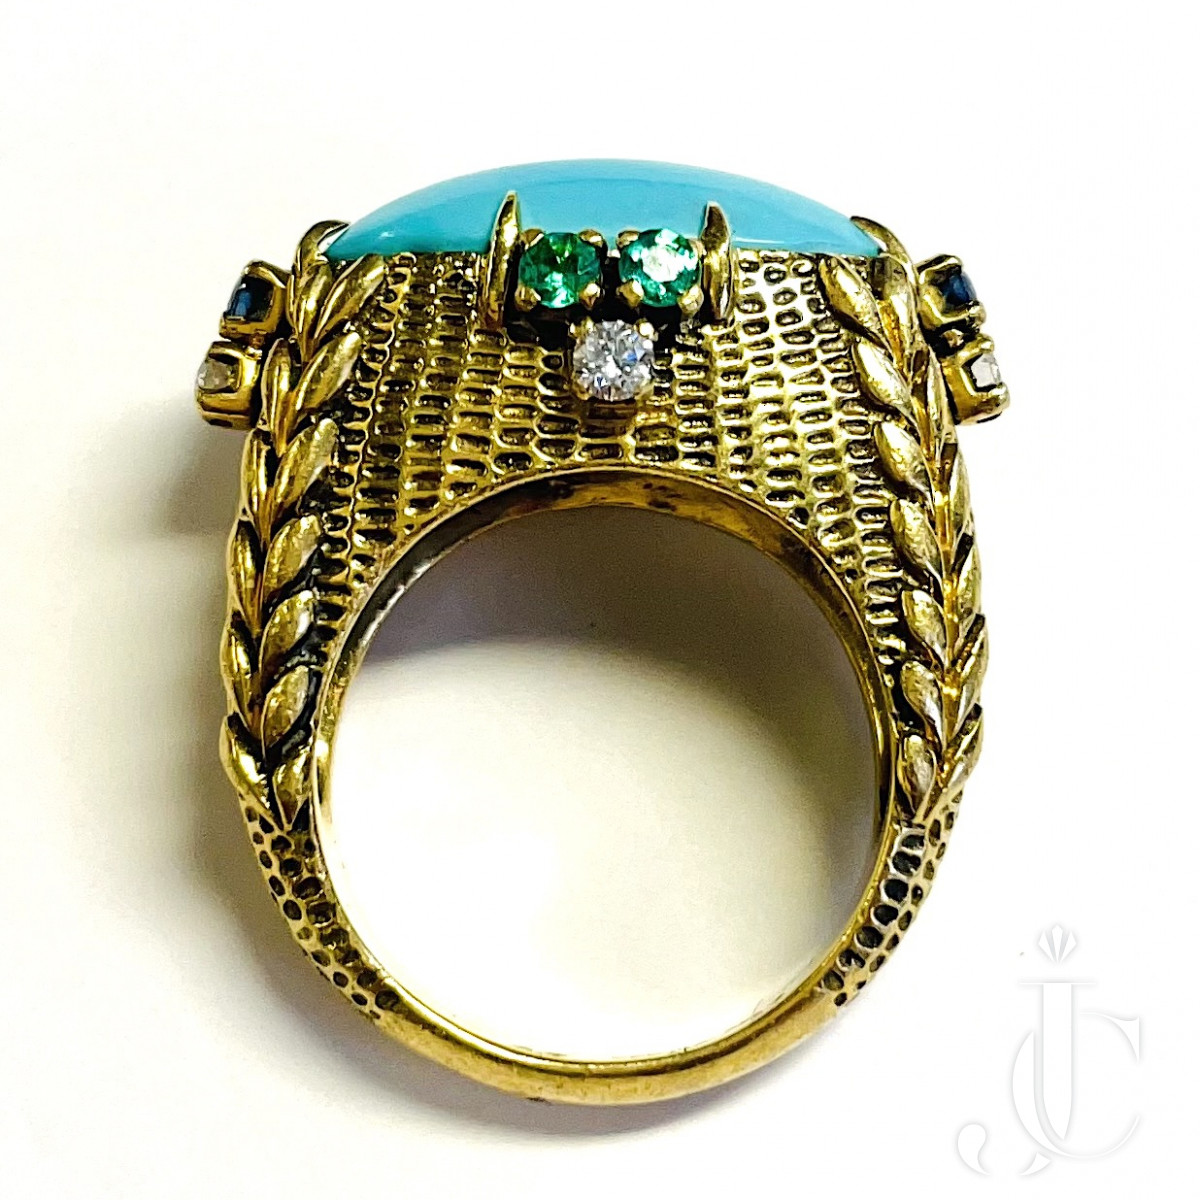 Cartier Turquoise Ring